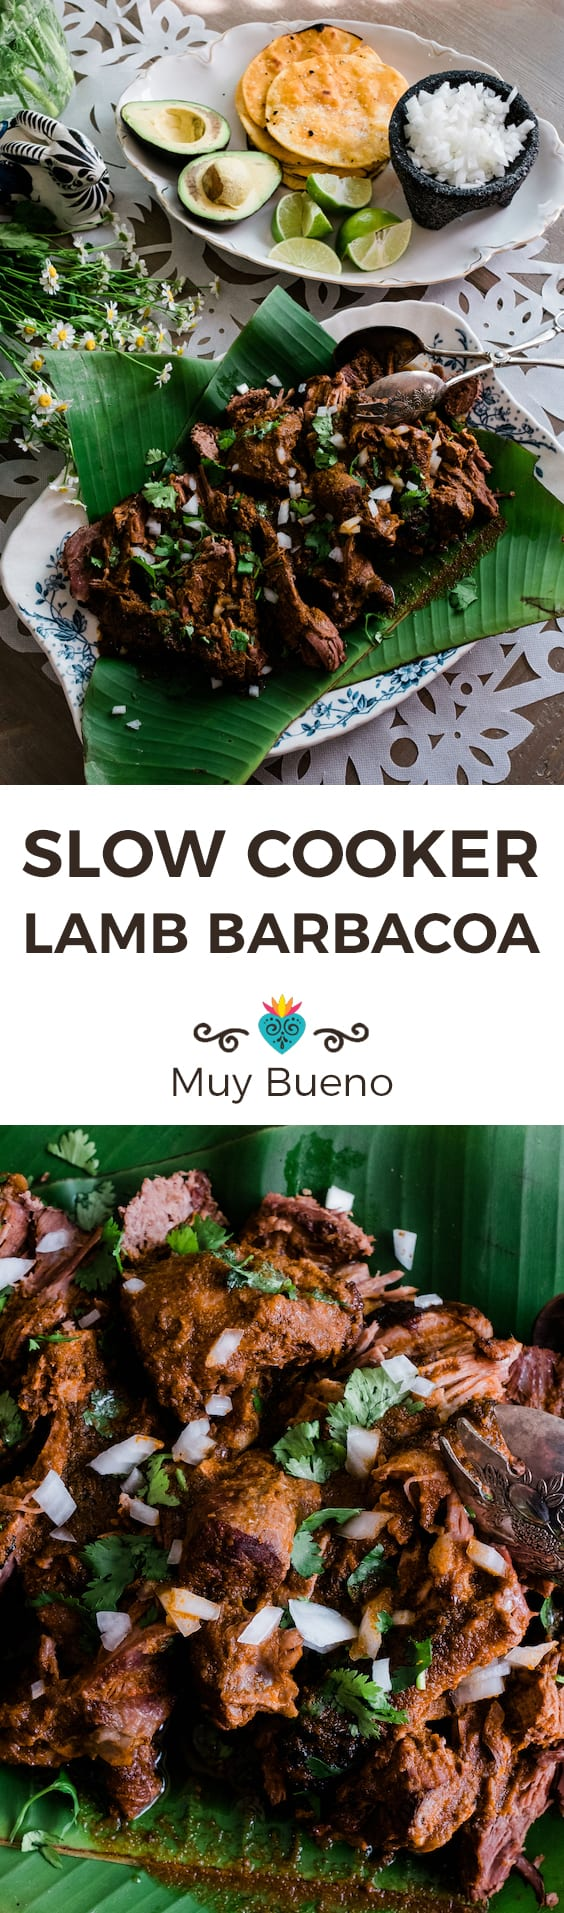 Slow Cooker Lamb Barbacoa collage with text overlay